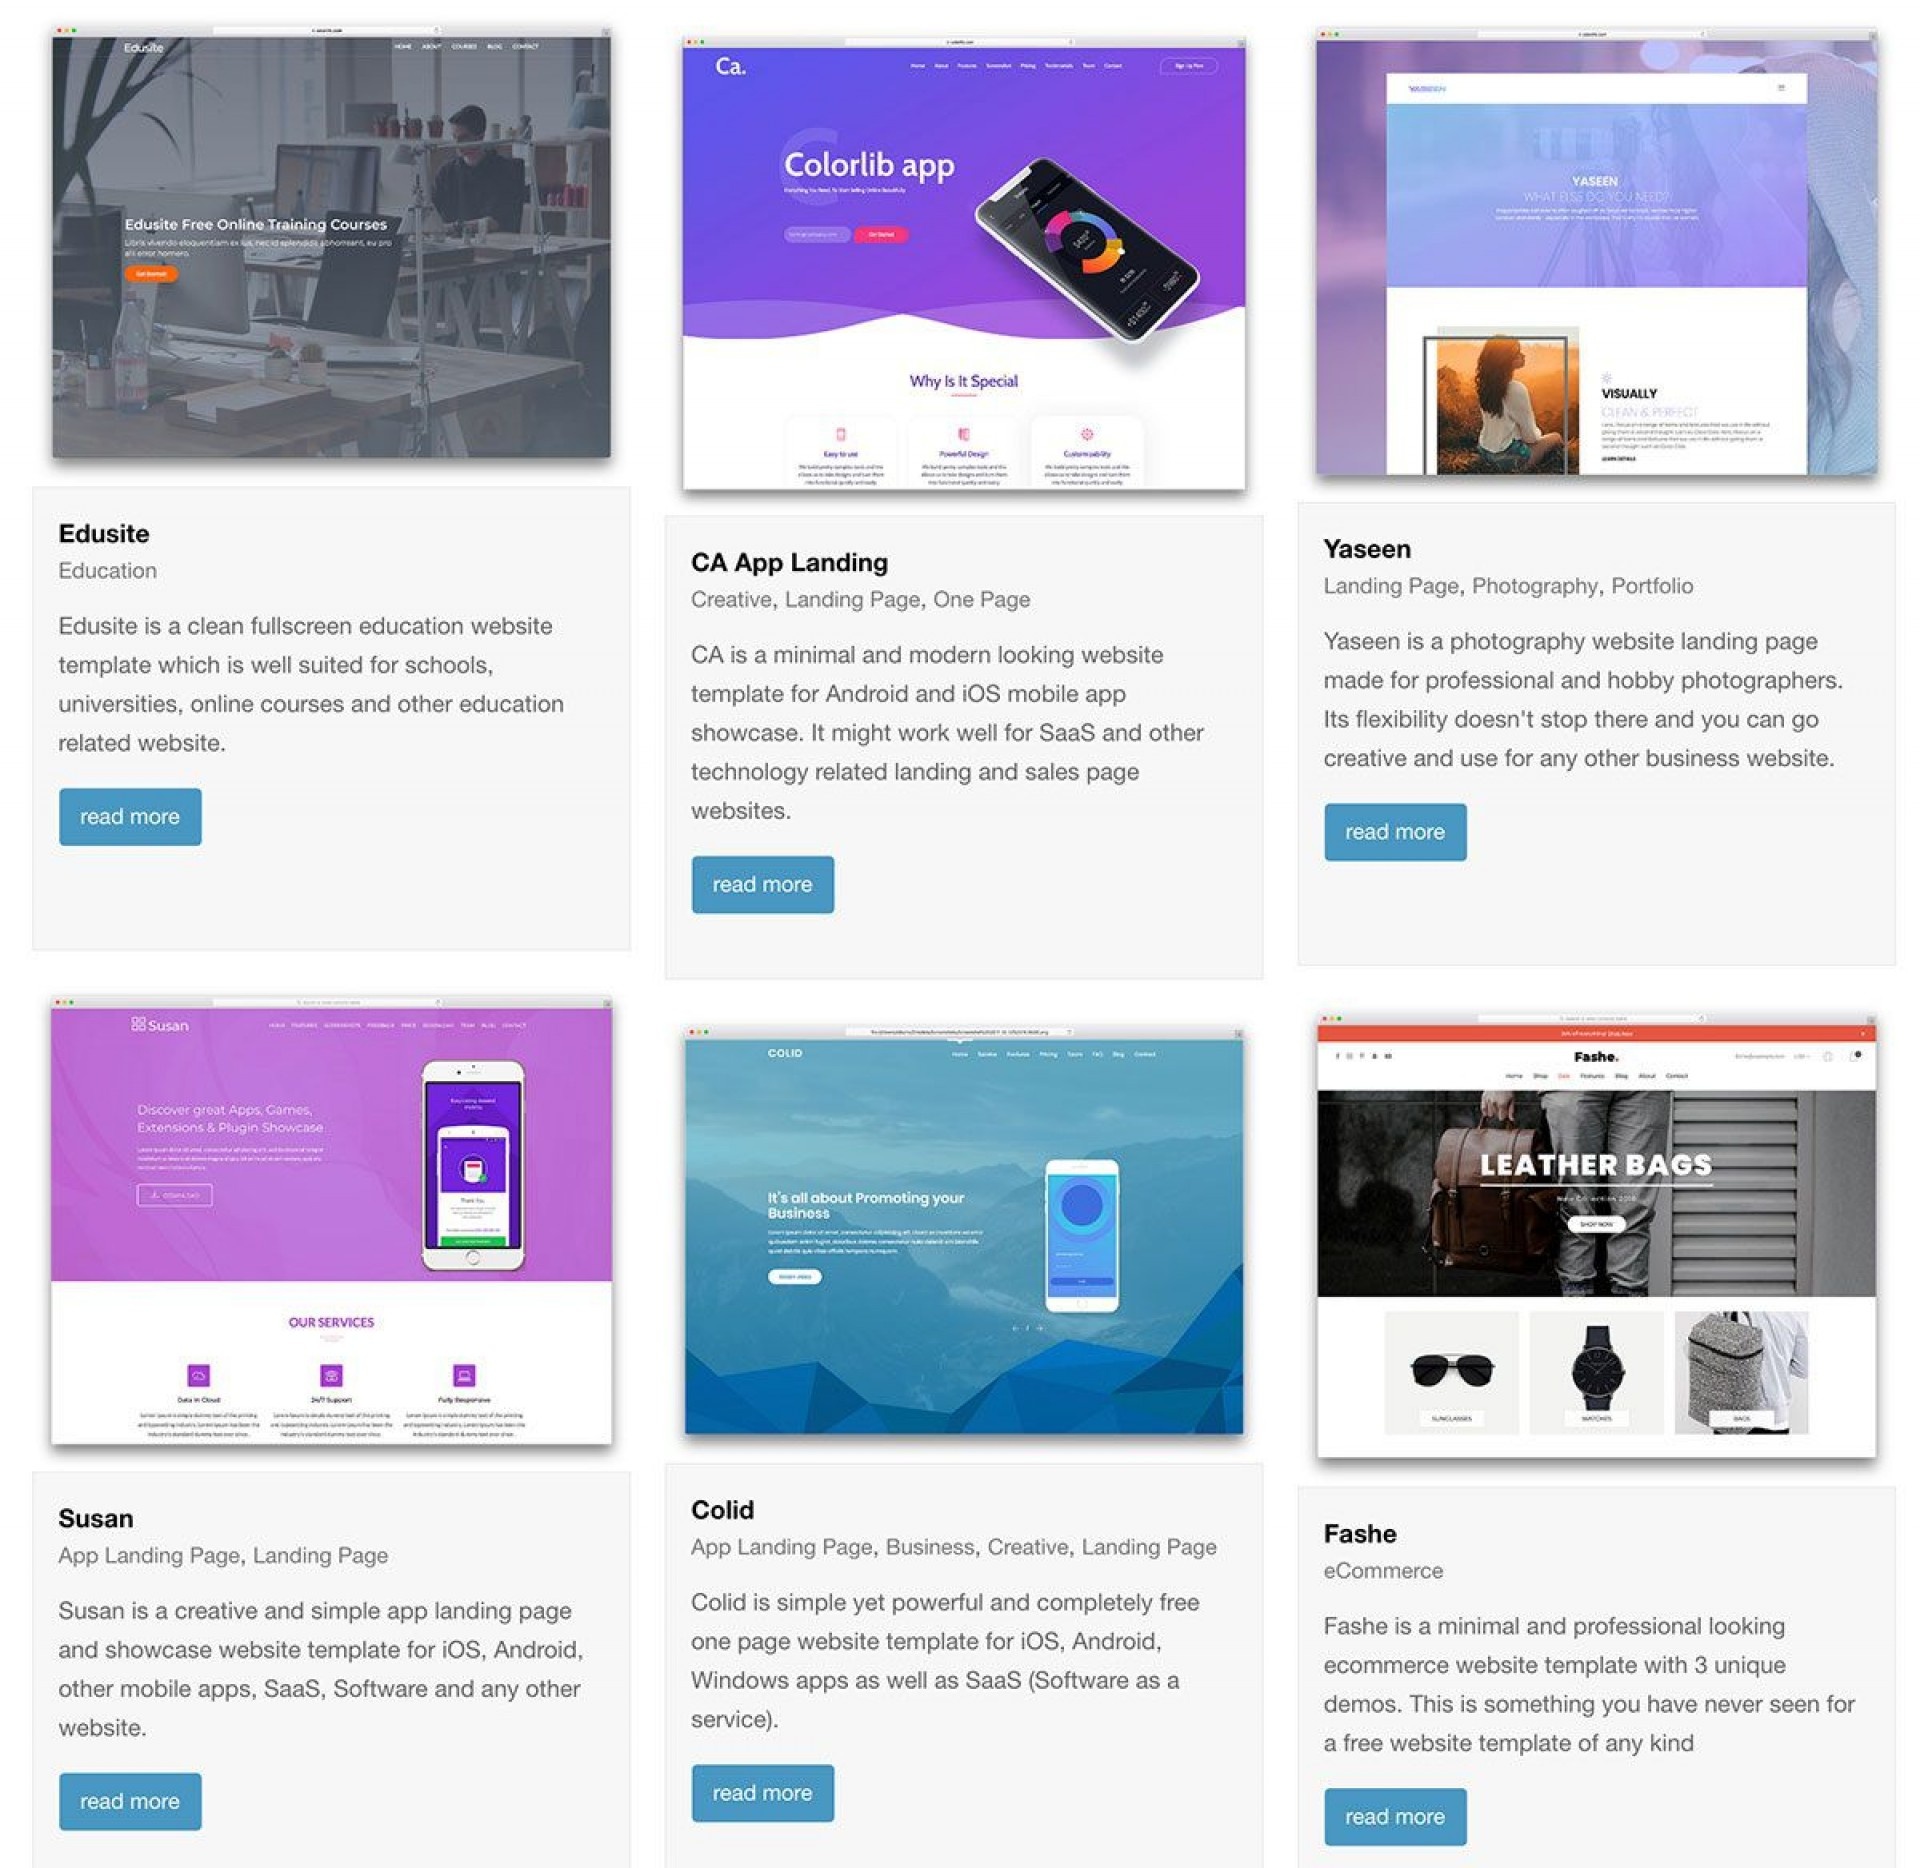 005 Frightening Web Page Template Html Free Download Idea  One Website Cs Single1920